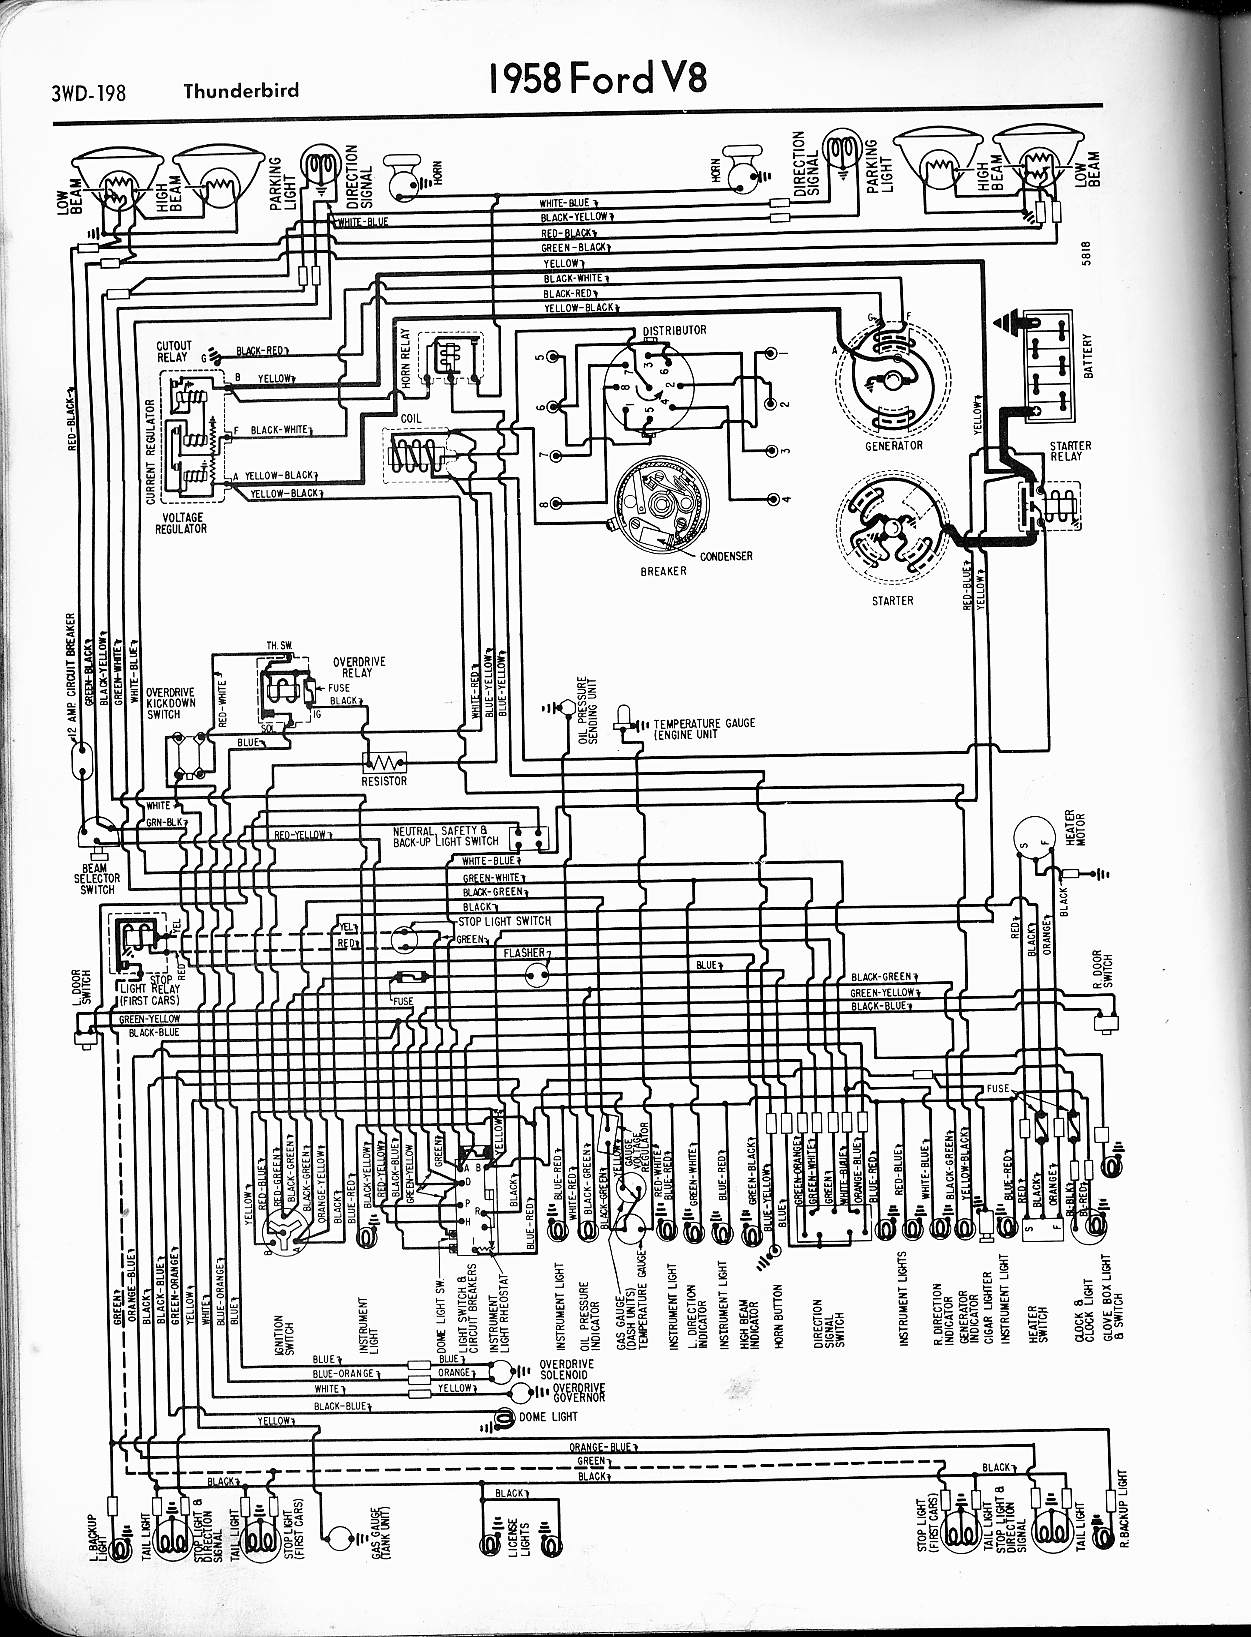 57 65 ford wiring diagrams 1969 ford f-250 wiring diagram 65 ford f100 wiring diagram #20